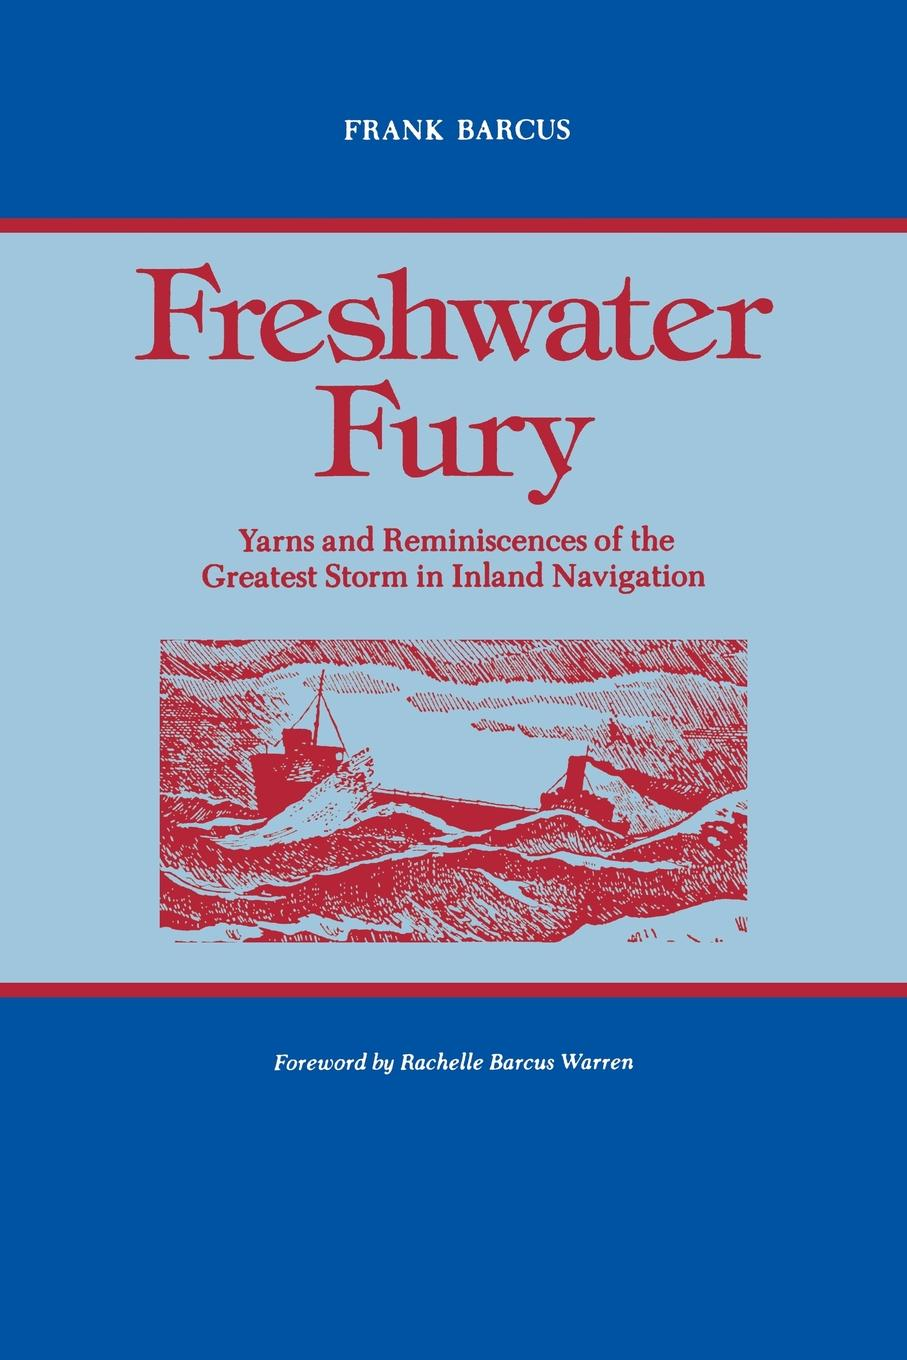 Frank Barcus Freshwater Fury. Yarns and Reminiscences of the Greatest Storm in Inland Navigation lakes restaurant